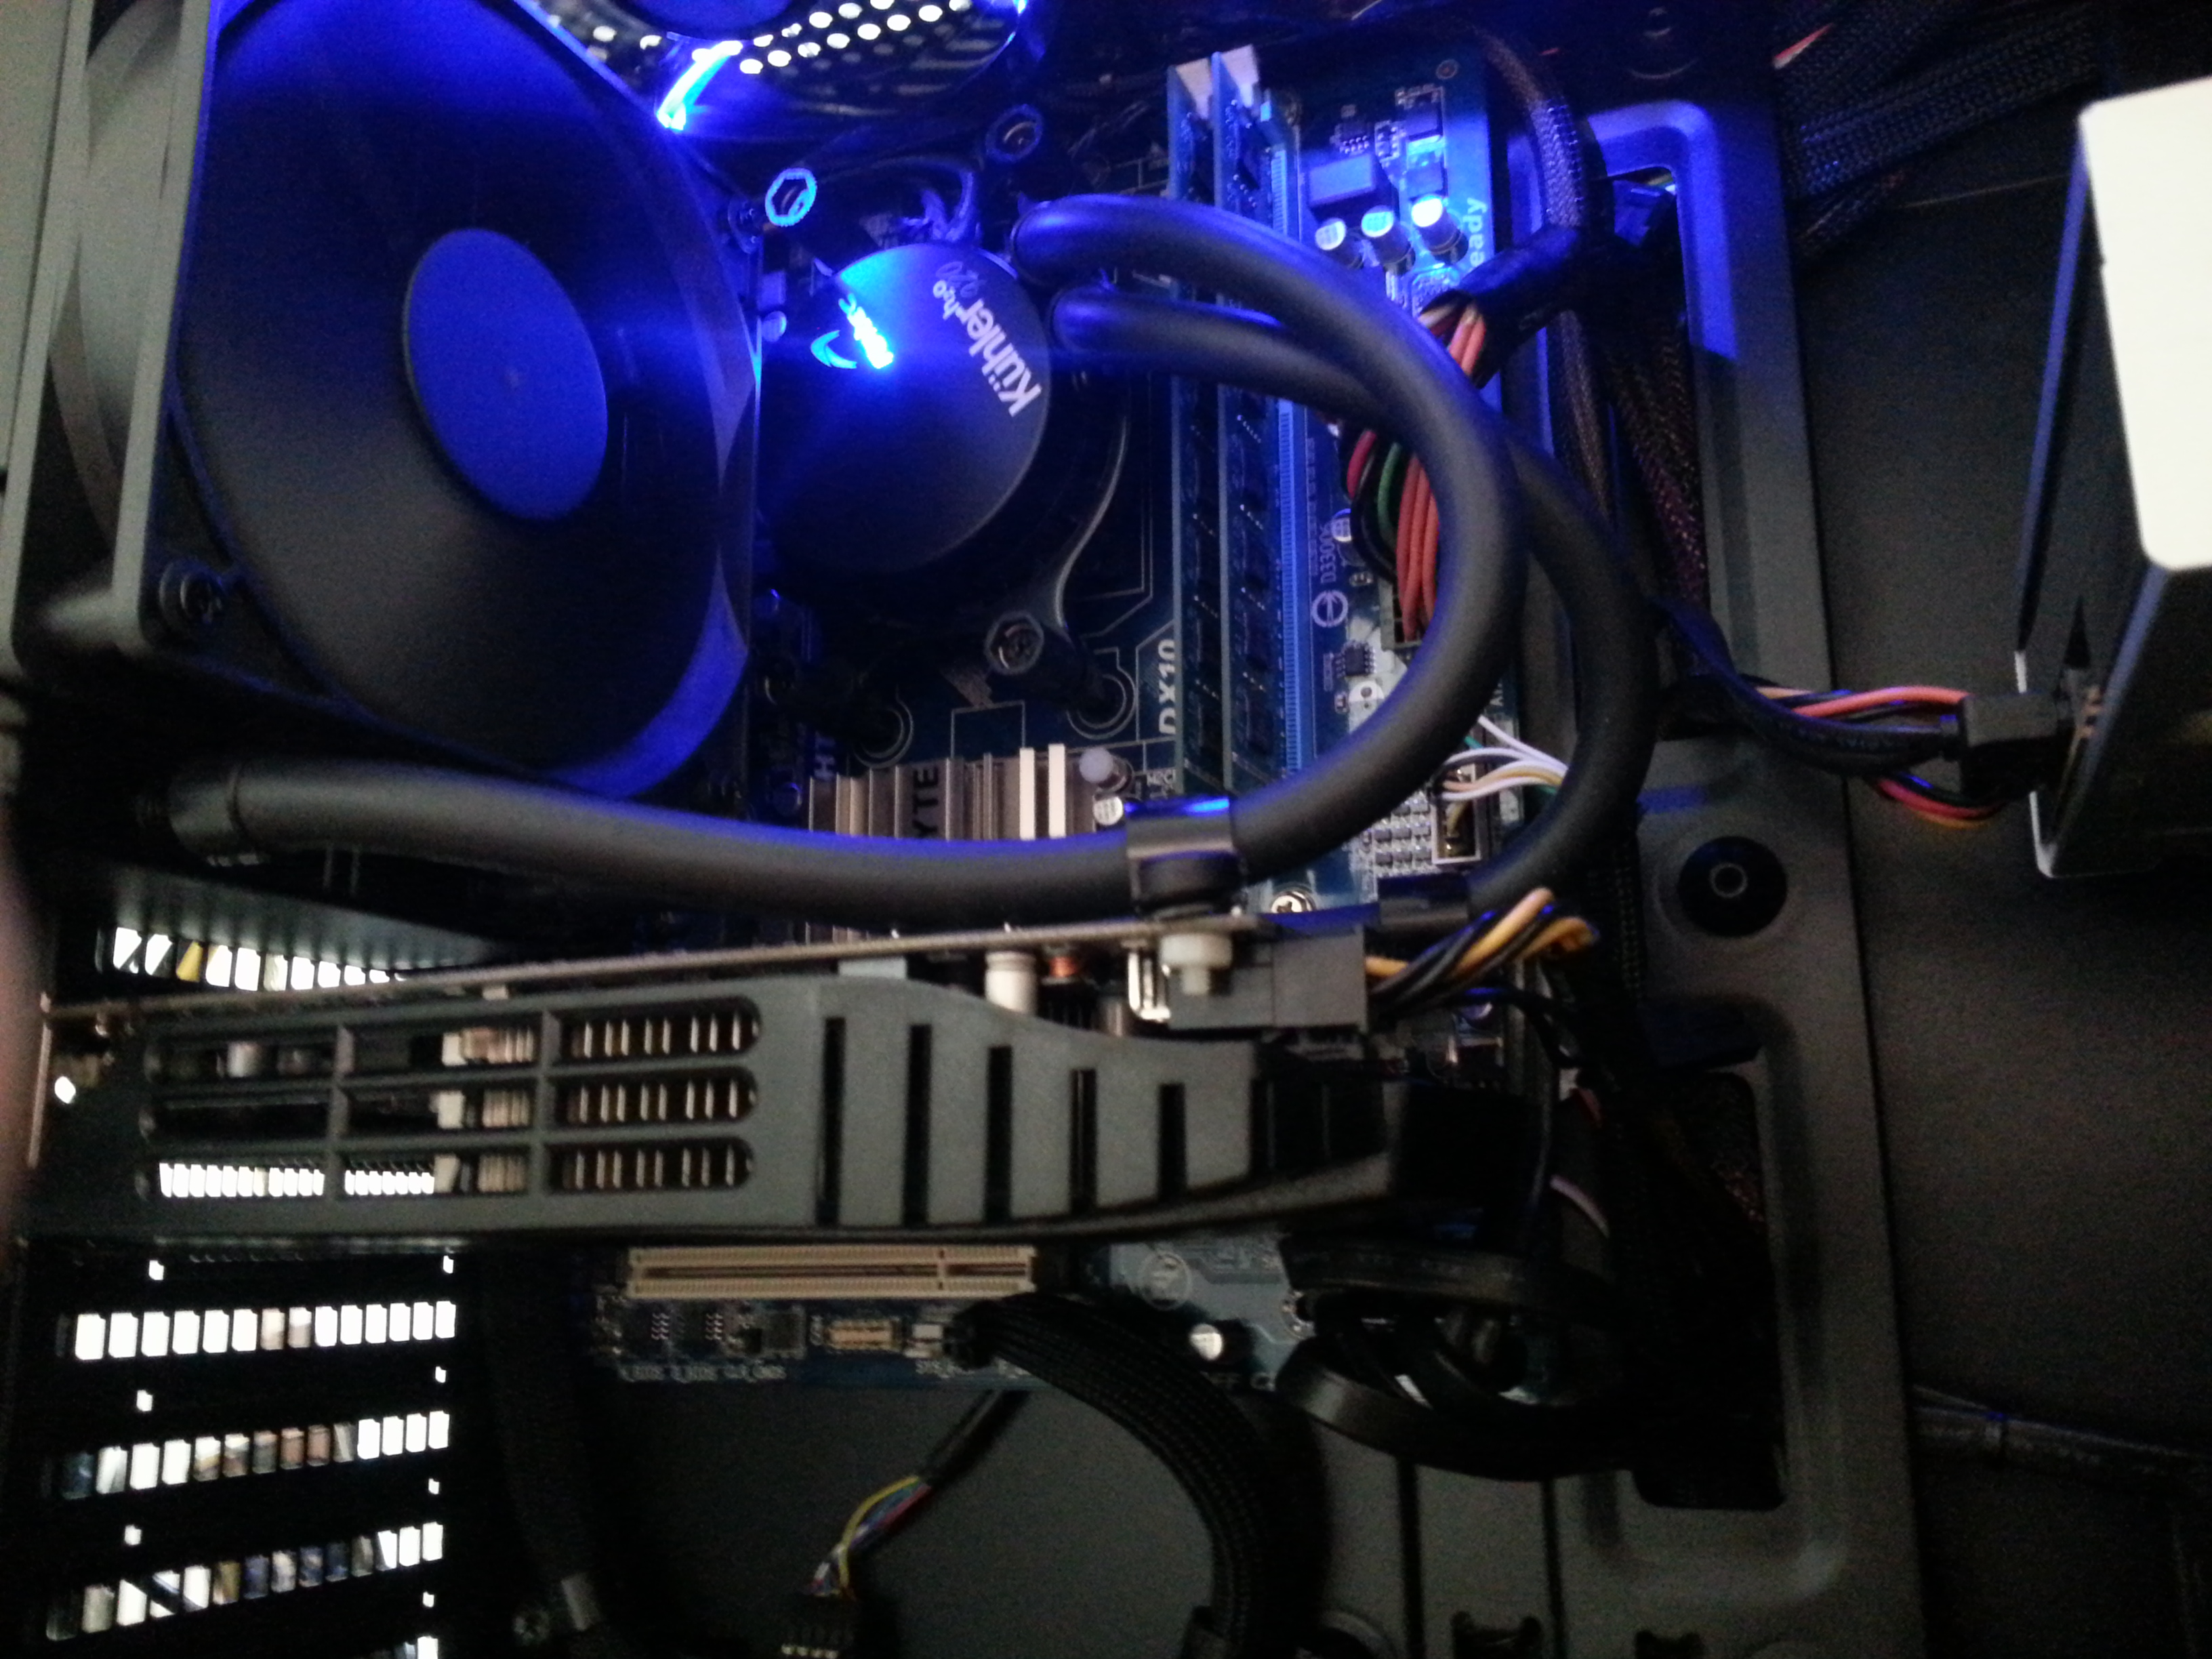 The glowing blue LED's, look sharp in the dark. The GPU actually covers the PCI-e x1 slot and the $39.00 Gigabyte board has two internal headers and two external (8 USB 2.0 ports) Adding PCI card with USB would only give me  USB 2.0 rather than USB 3.0 because of bandwidth architecture of the slot / buss. The next board up was $35.00 more and the ribbon cable and PCI-e USB 3.0 card was only $12.00 so was good deal. There is barely, I mean barely enough room to actually bend the ribbon and duck the GPU to put the covered slot to use. I have yet to install it and when I do I will be sure to post pictures and comments. My current USB usage is extensive. I am using ports for, Microsoft 5000 mouse, Logitech HD C910 , Logitech K800 keyboard, Magicjack, Antec cooler, card reader, Bluetooth.